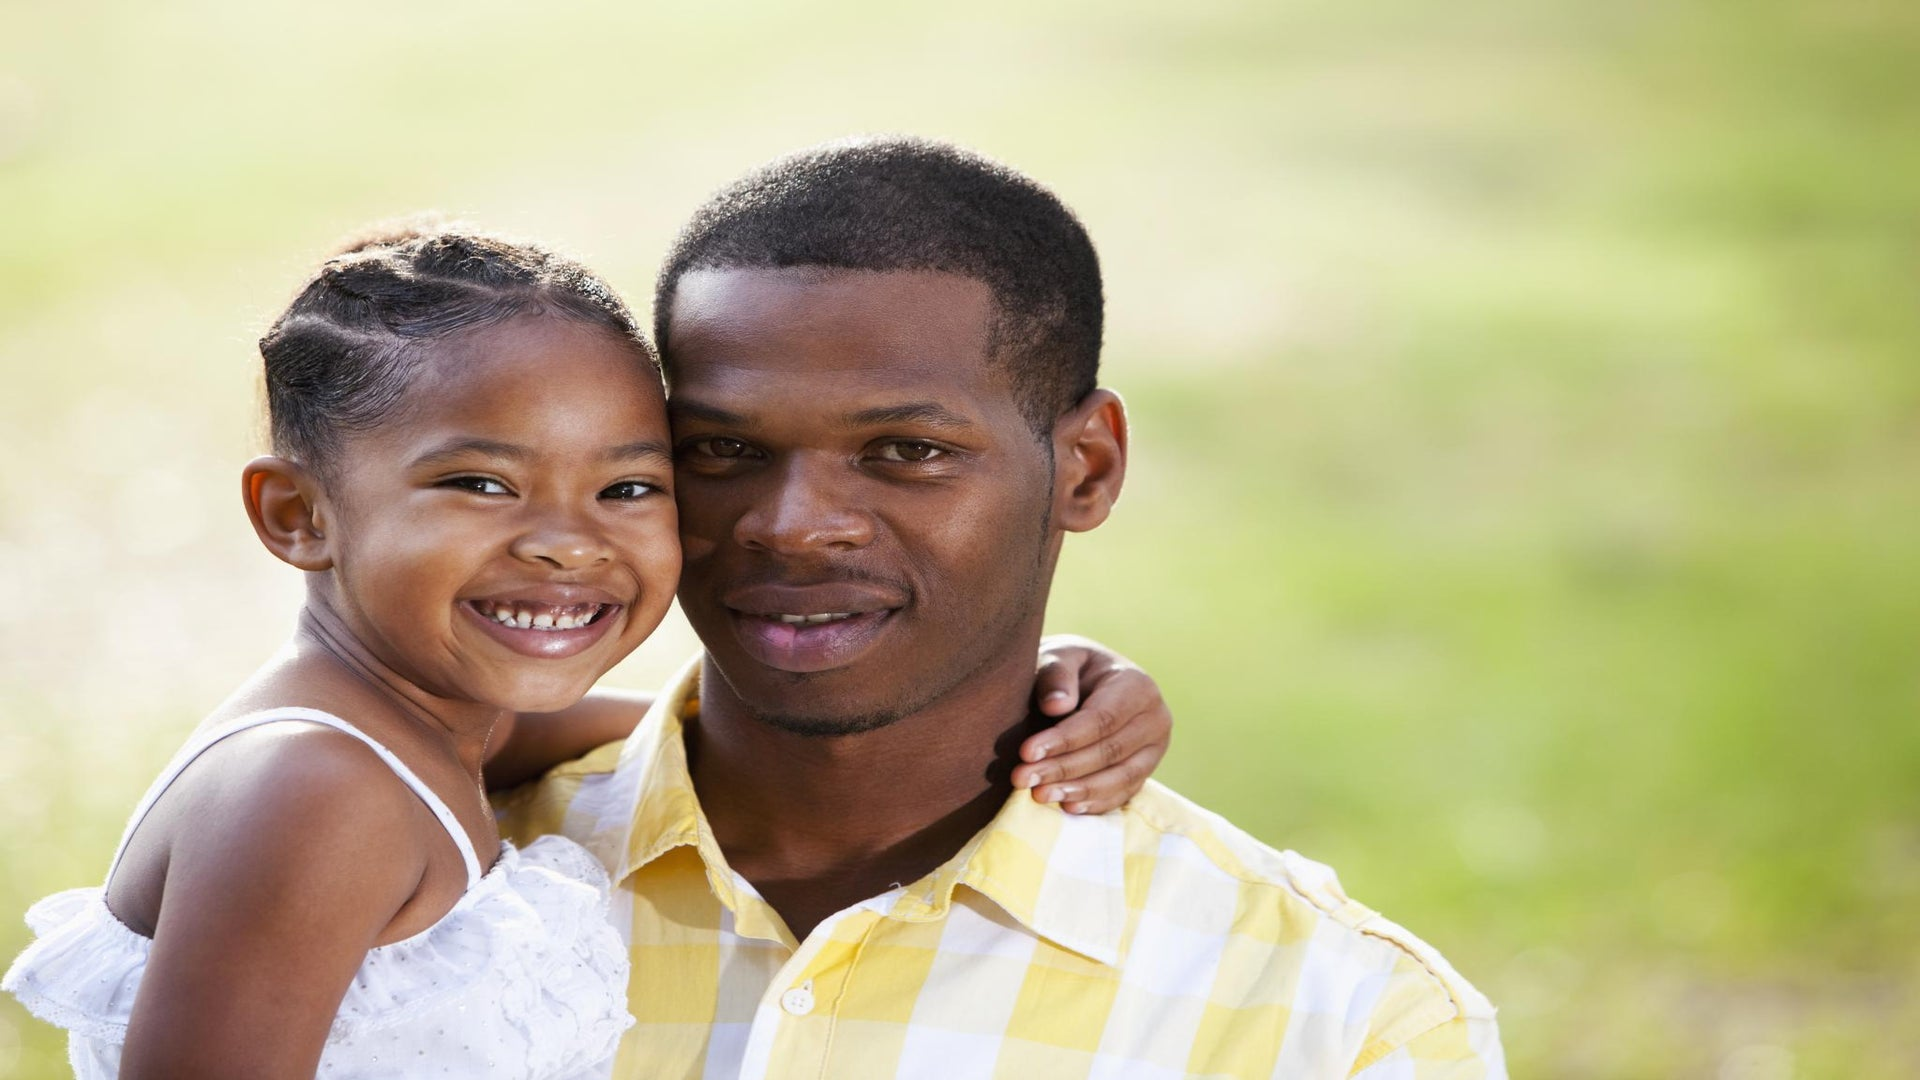 ESSENCE Poll: Do You Think Statistics About Black Fathers Tell the Whole Story?